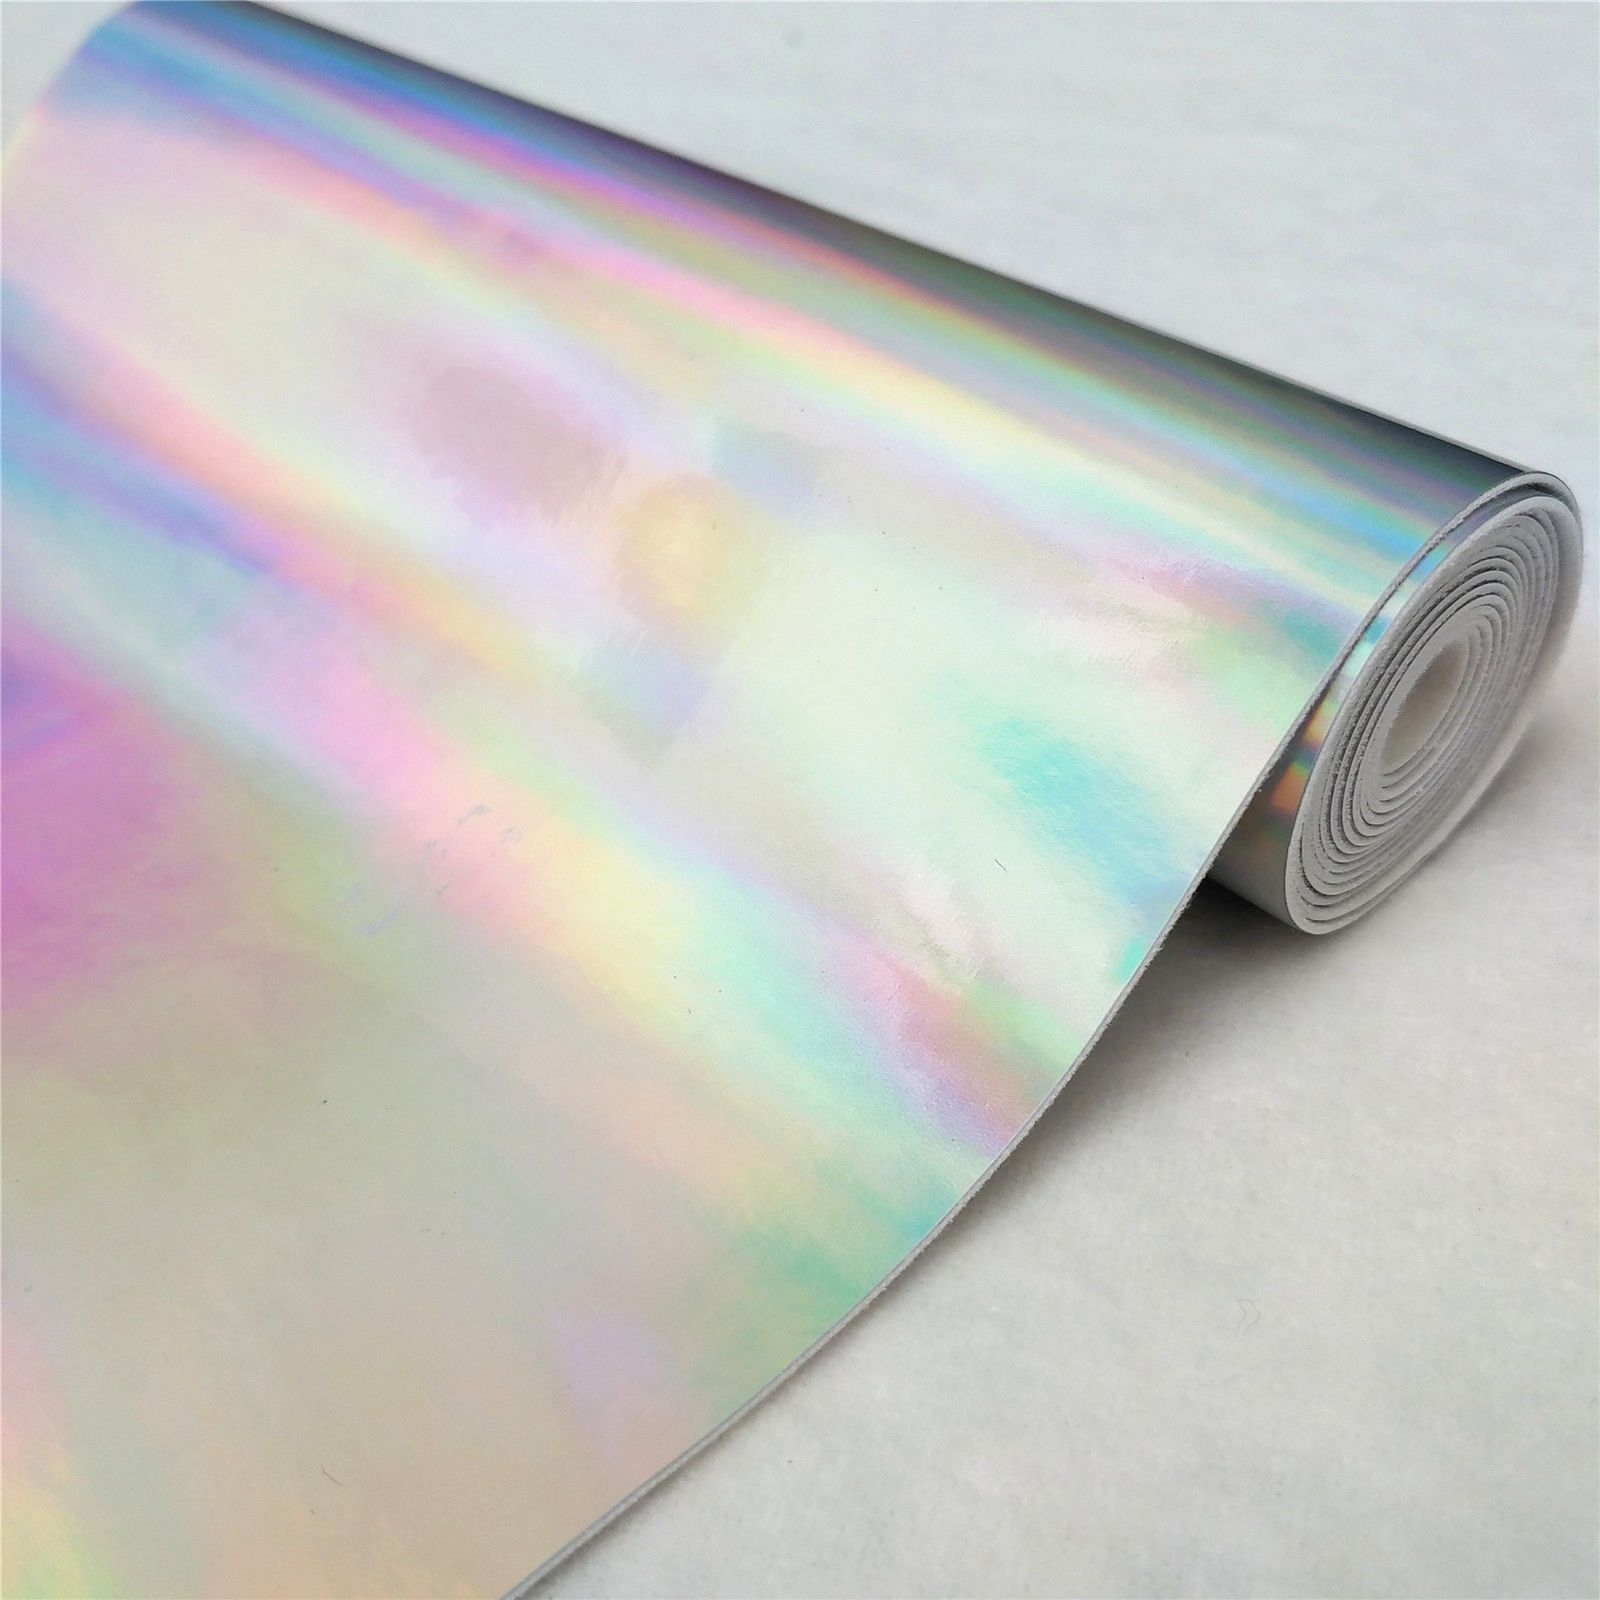 Metallic Iridescent Leather Fabric Holographic Upholstery Decor Sew Bags Bows